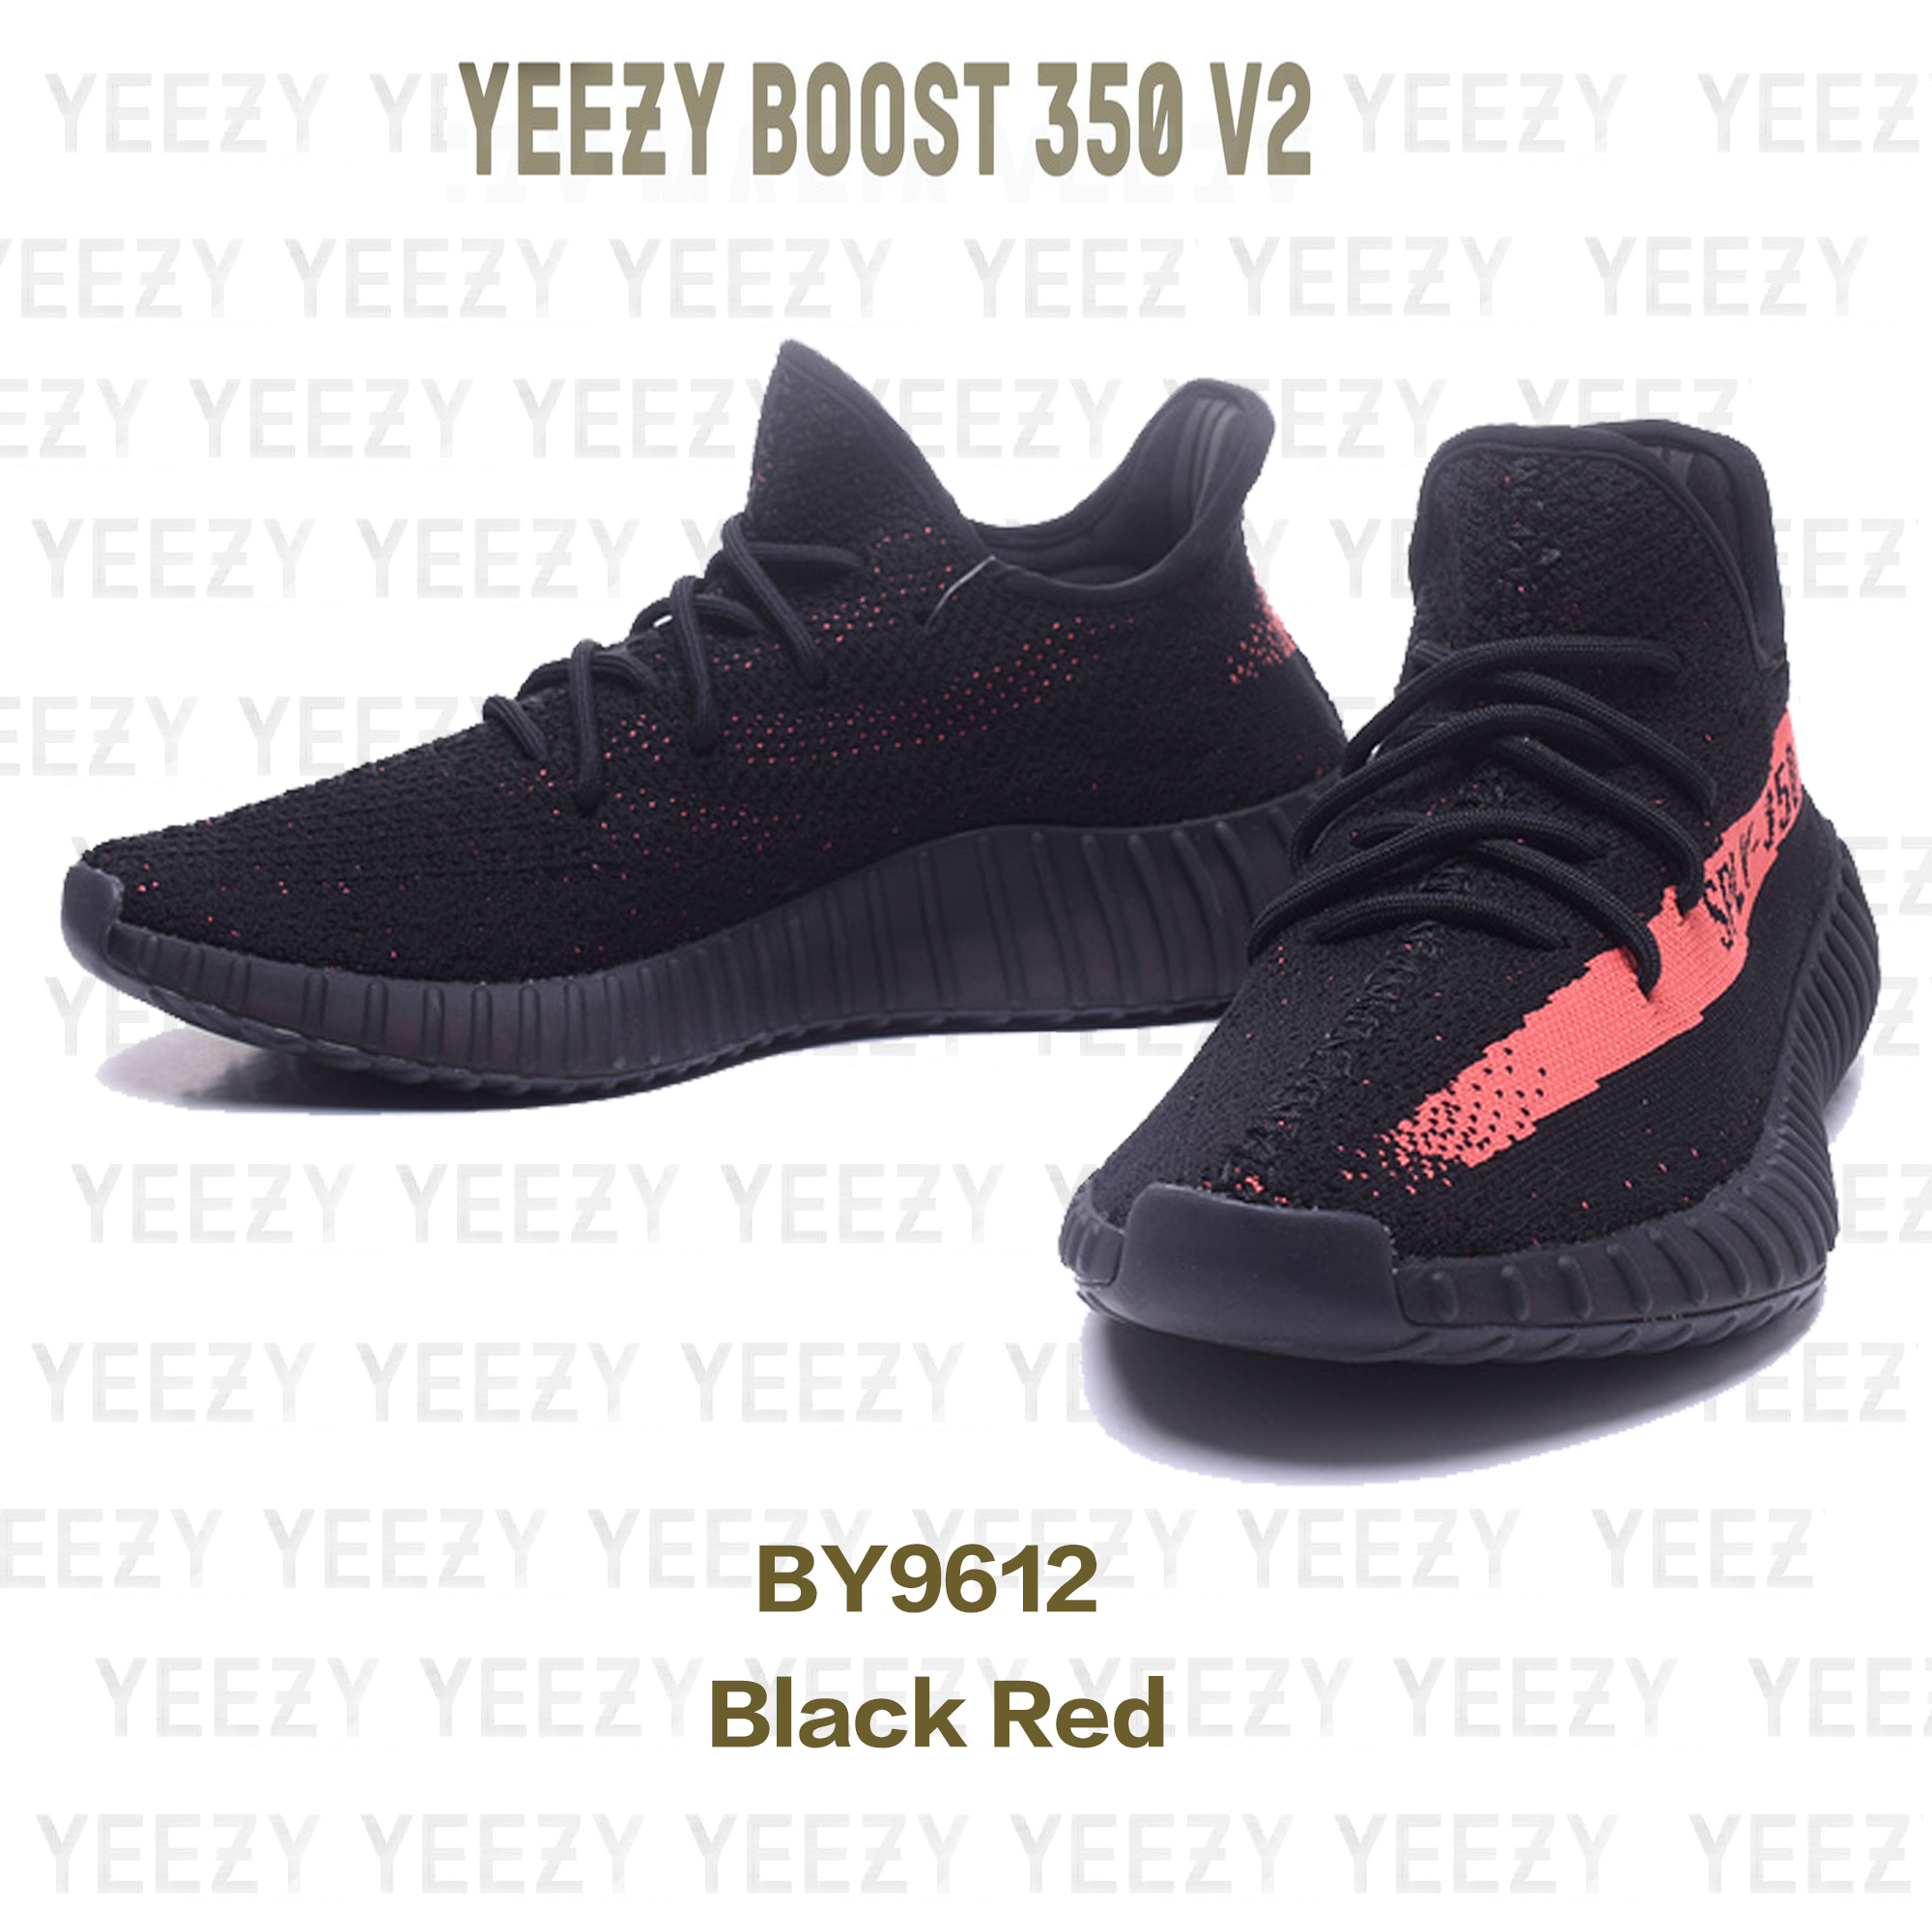 4e1b822bf men s Yeezy Boost 350 V2